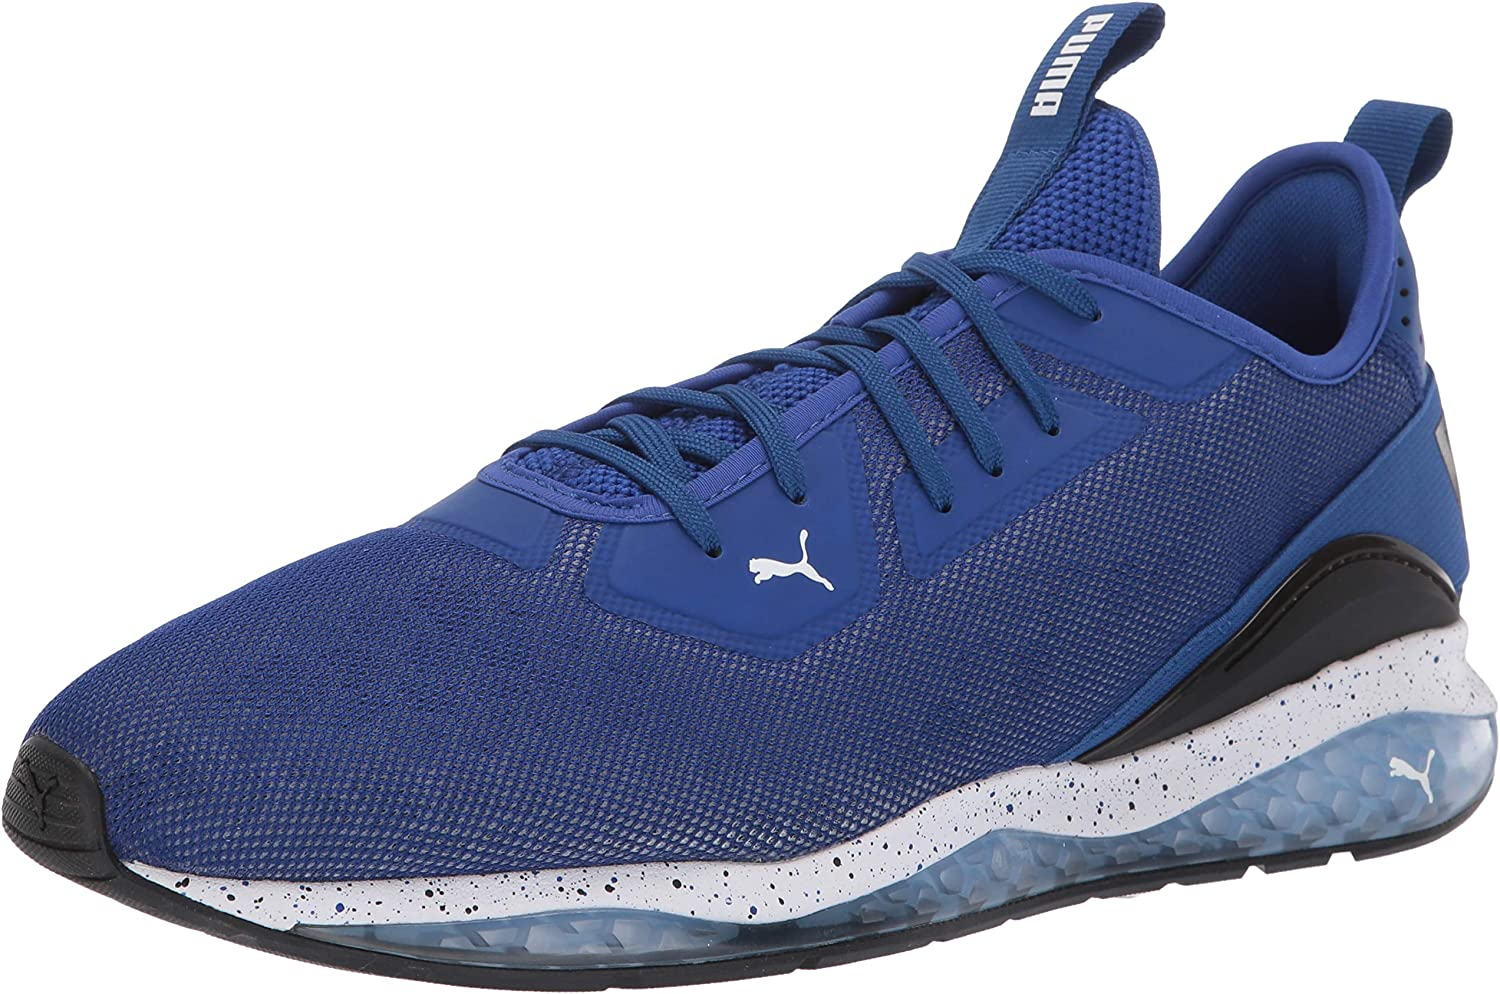 Puma Men's's Cell Descend Sneaker